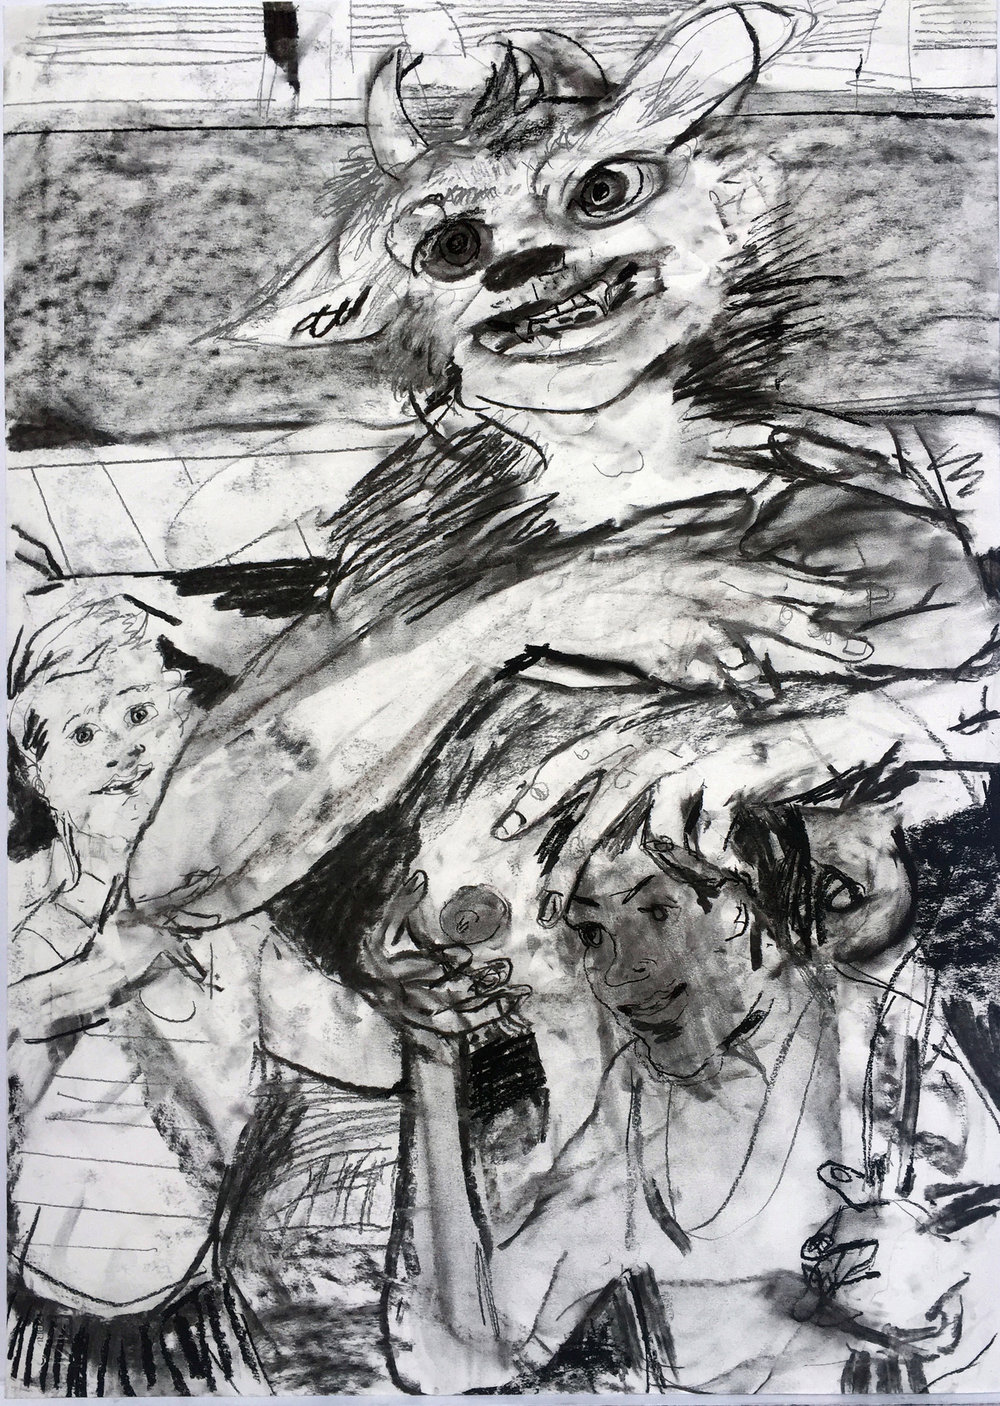 Protection 18 by 24 inches charcoal on paper 2017.jpg